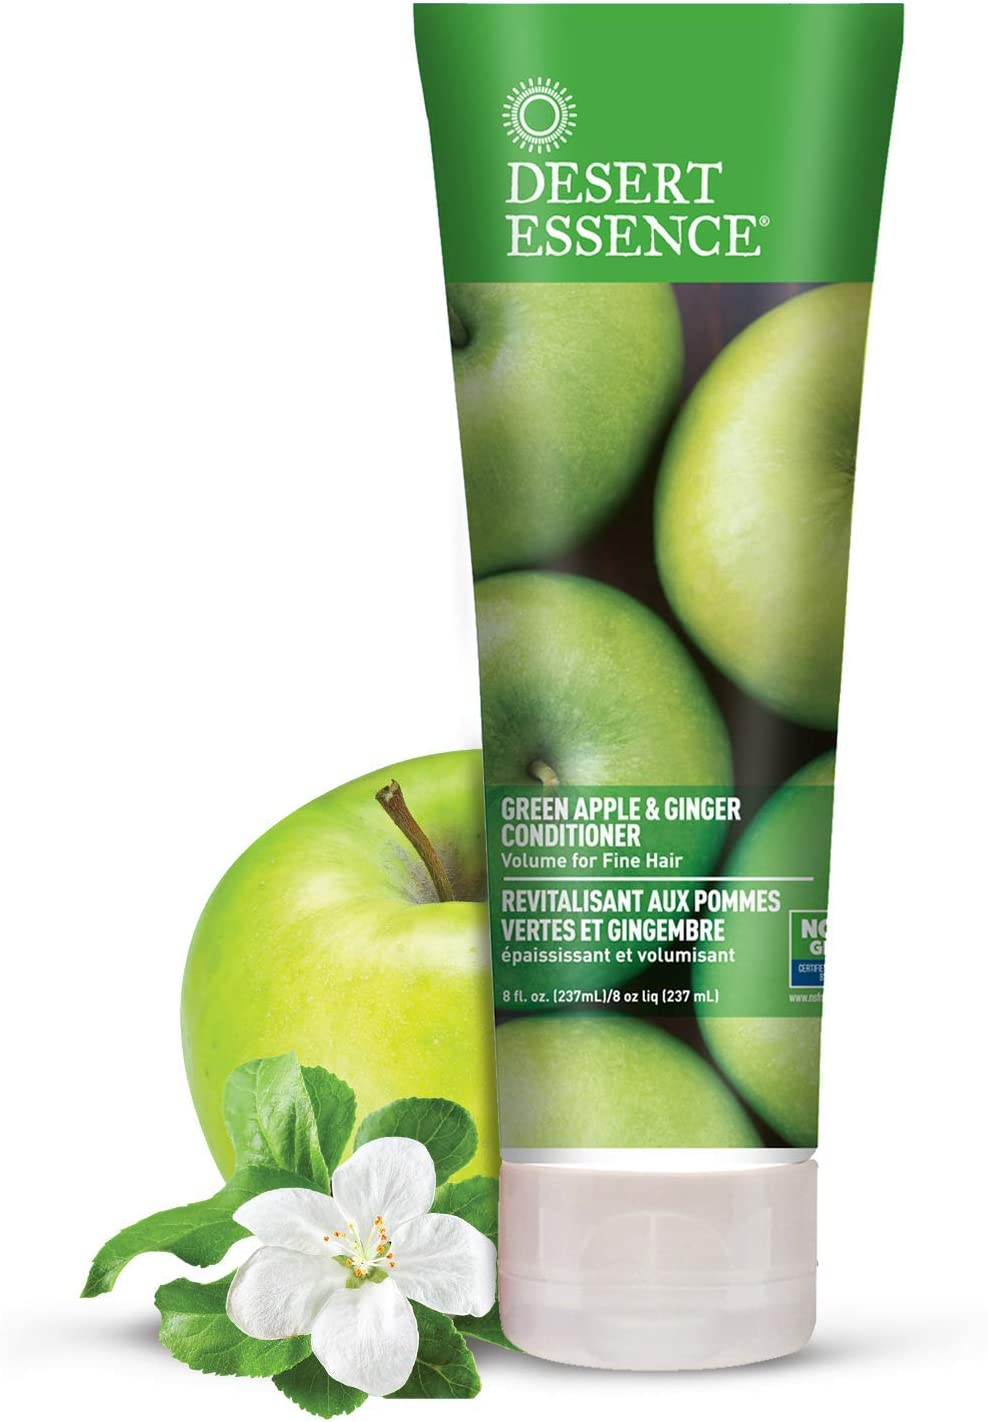 Desert Essence Green Apple and Ginger Conditioner - 8 fl oz - 2 Pack - Volume for Fine Hair - Moisturizing, Thickening, Volatizing - w/Organic Extracts and Oils, Vitamins, Antioxidants - Paraben-Free